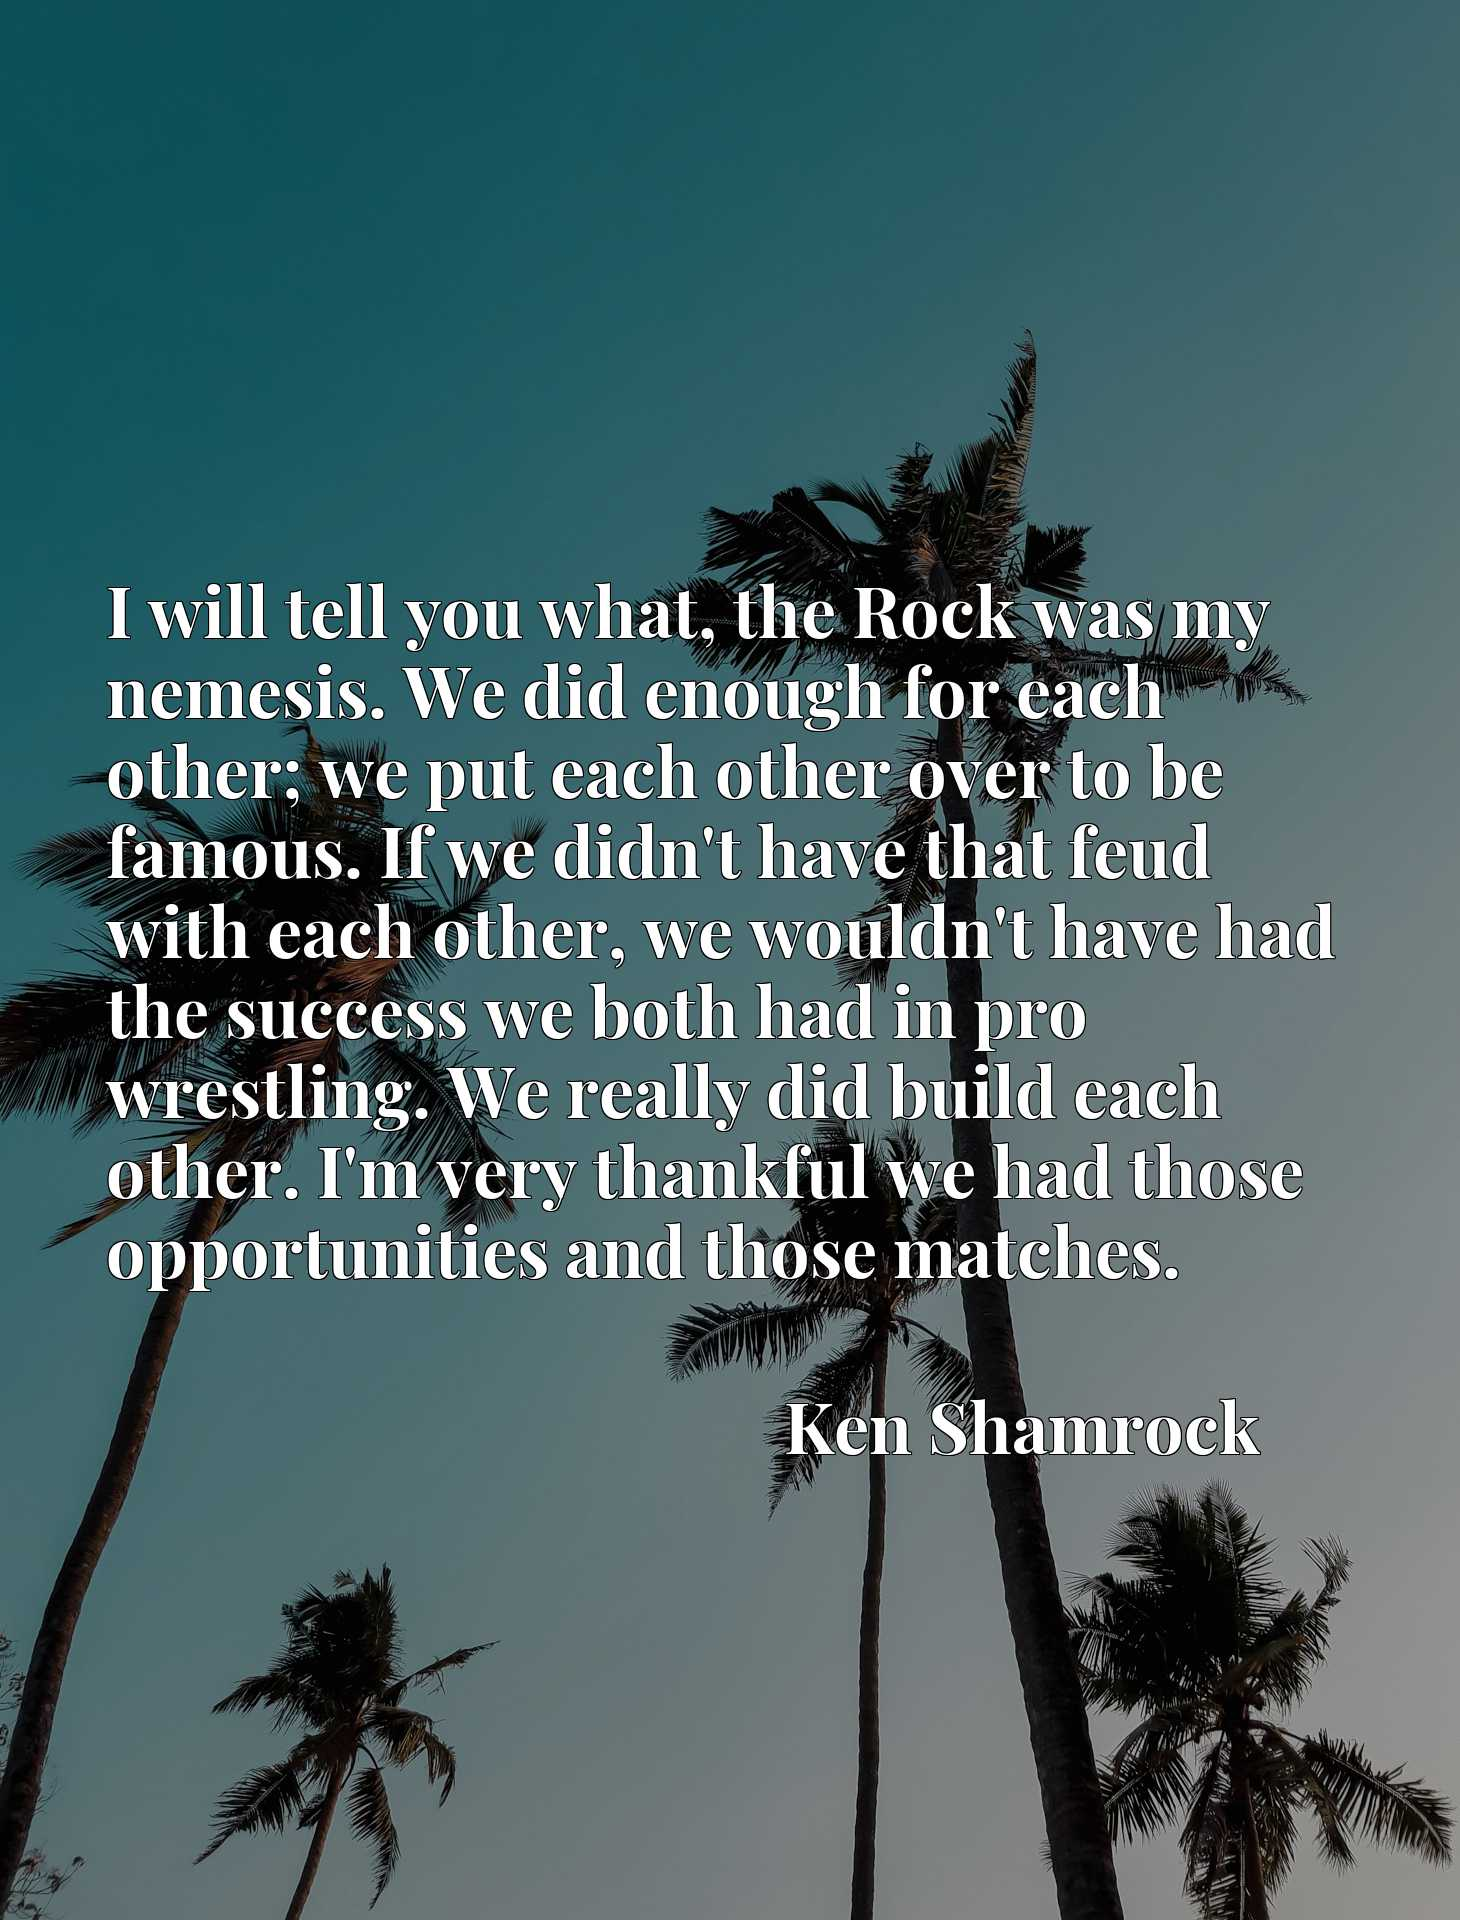 I will tell you what, the Rock was my nemesis. We did enough for each other; we put each other over to be famous. If we didn't have that feud with each other, we wouldn't have had the success we both had in pro wrestling. We really did build each other. I'm very thankful we had those opportunities and those matches.